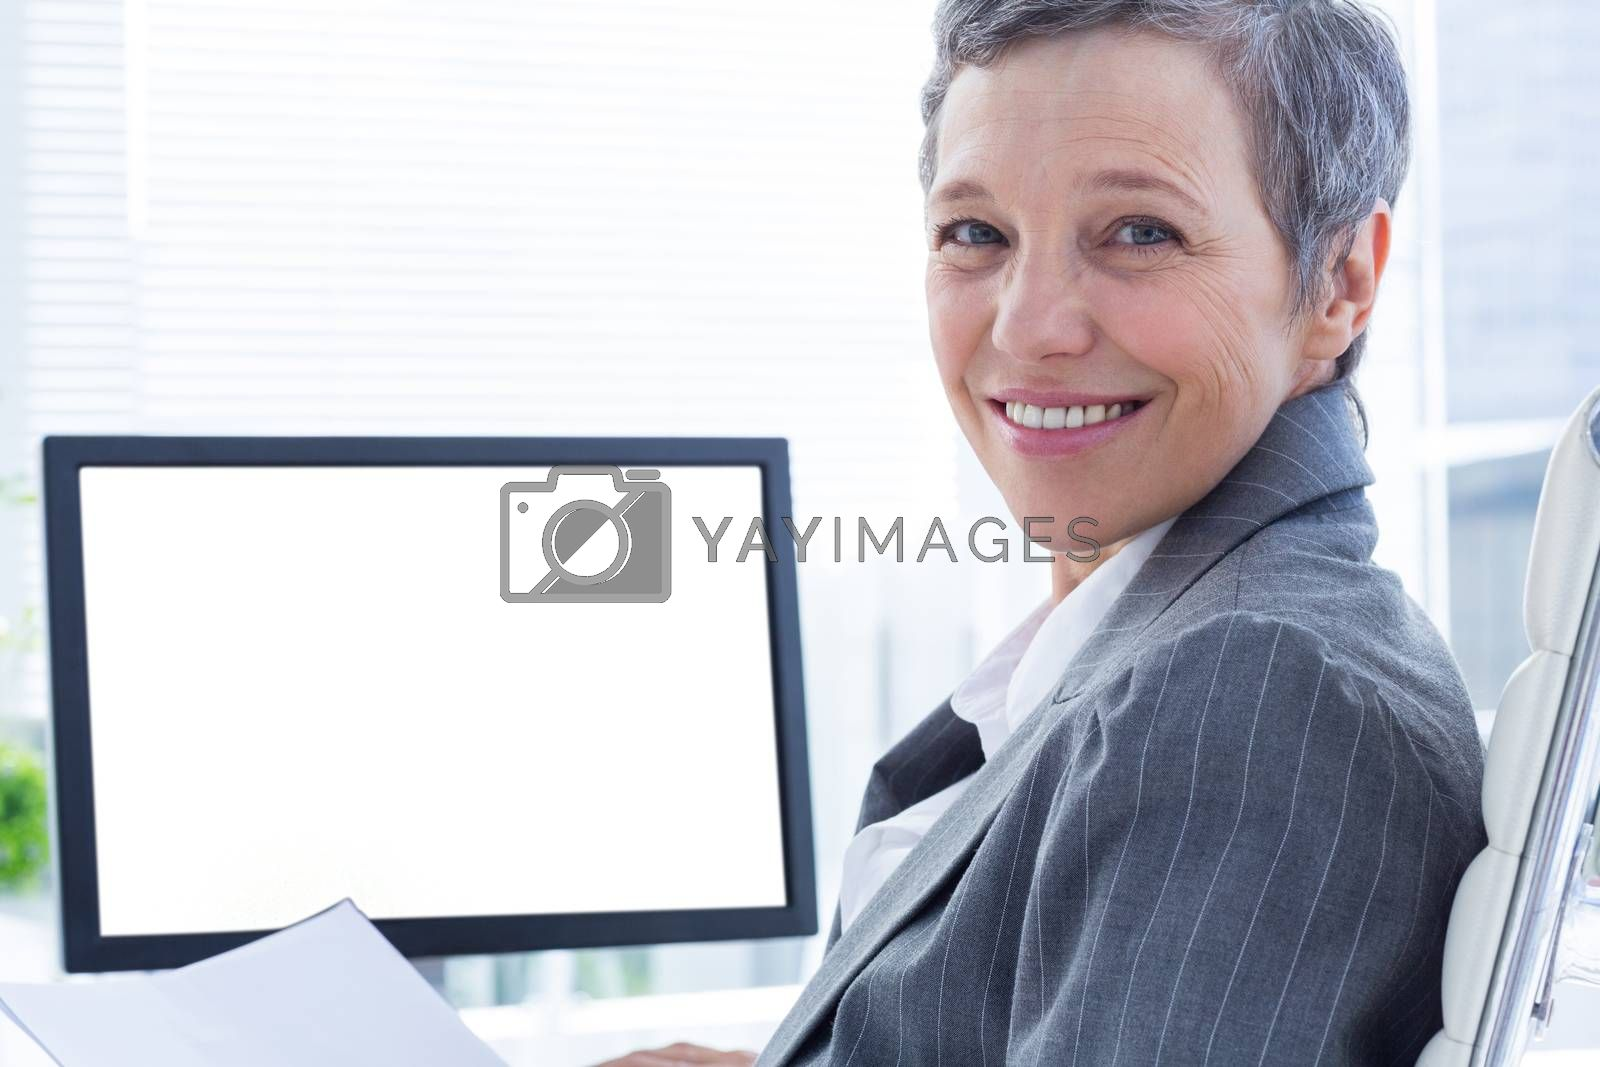 Royalty free image of Portrait of smiling businsswoman using computer by Wavebreakmedia